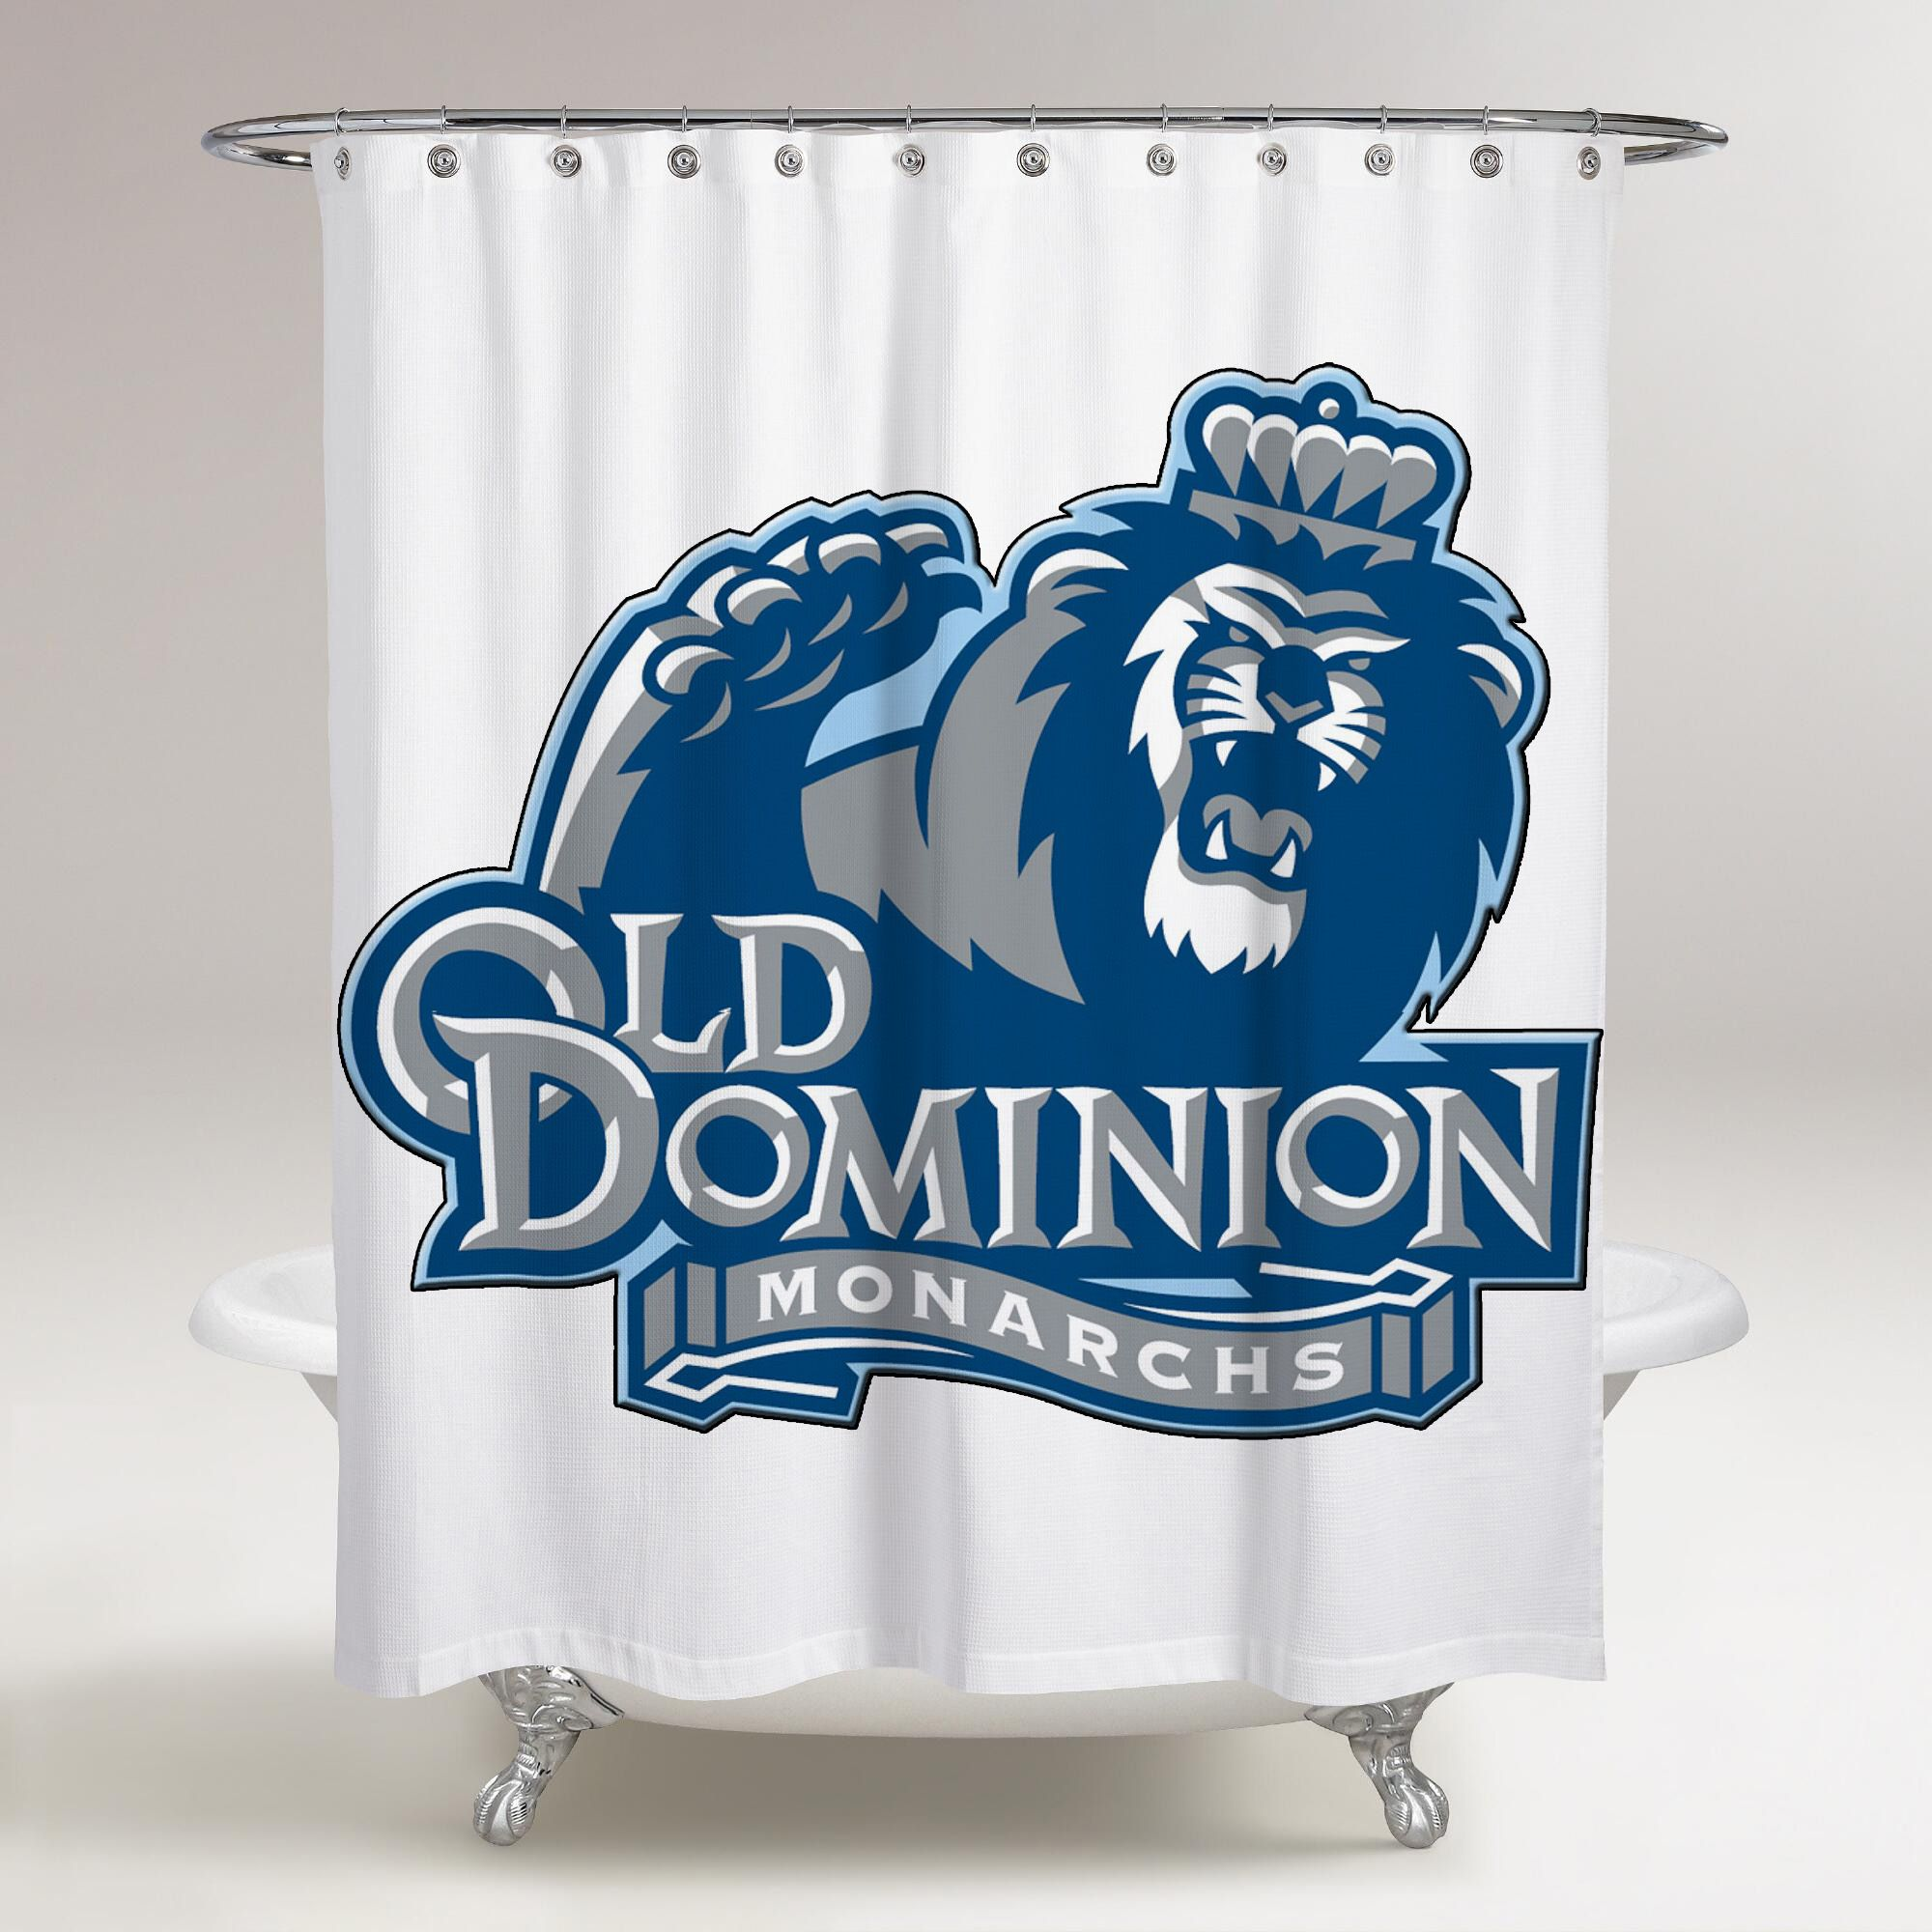 Old Dominion Monarchs Logo Printed Shower Curtain Bathroom Decor Price Free Shipping Fleeceblanket Bathroom Shower Curtains Shower Curtain Old Dominion